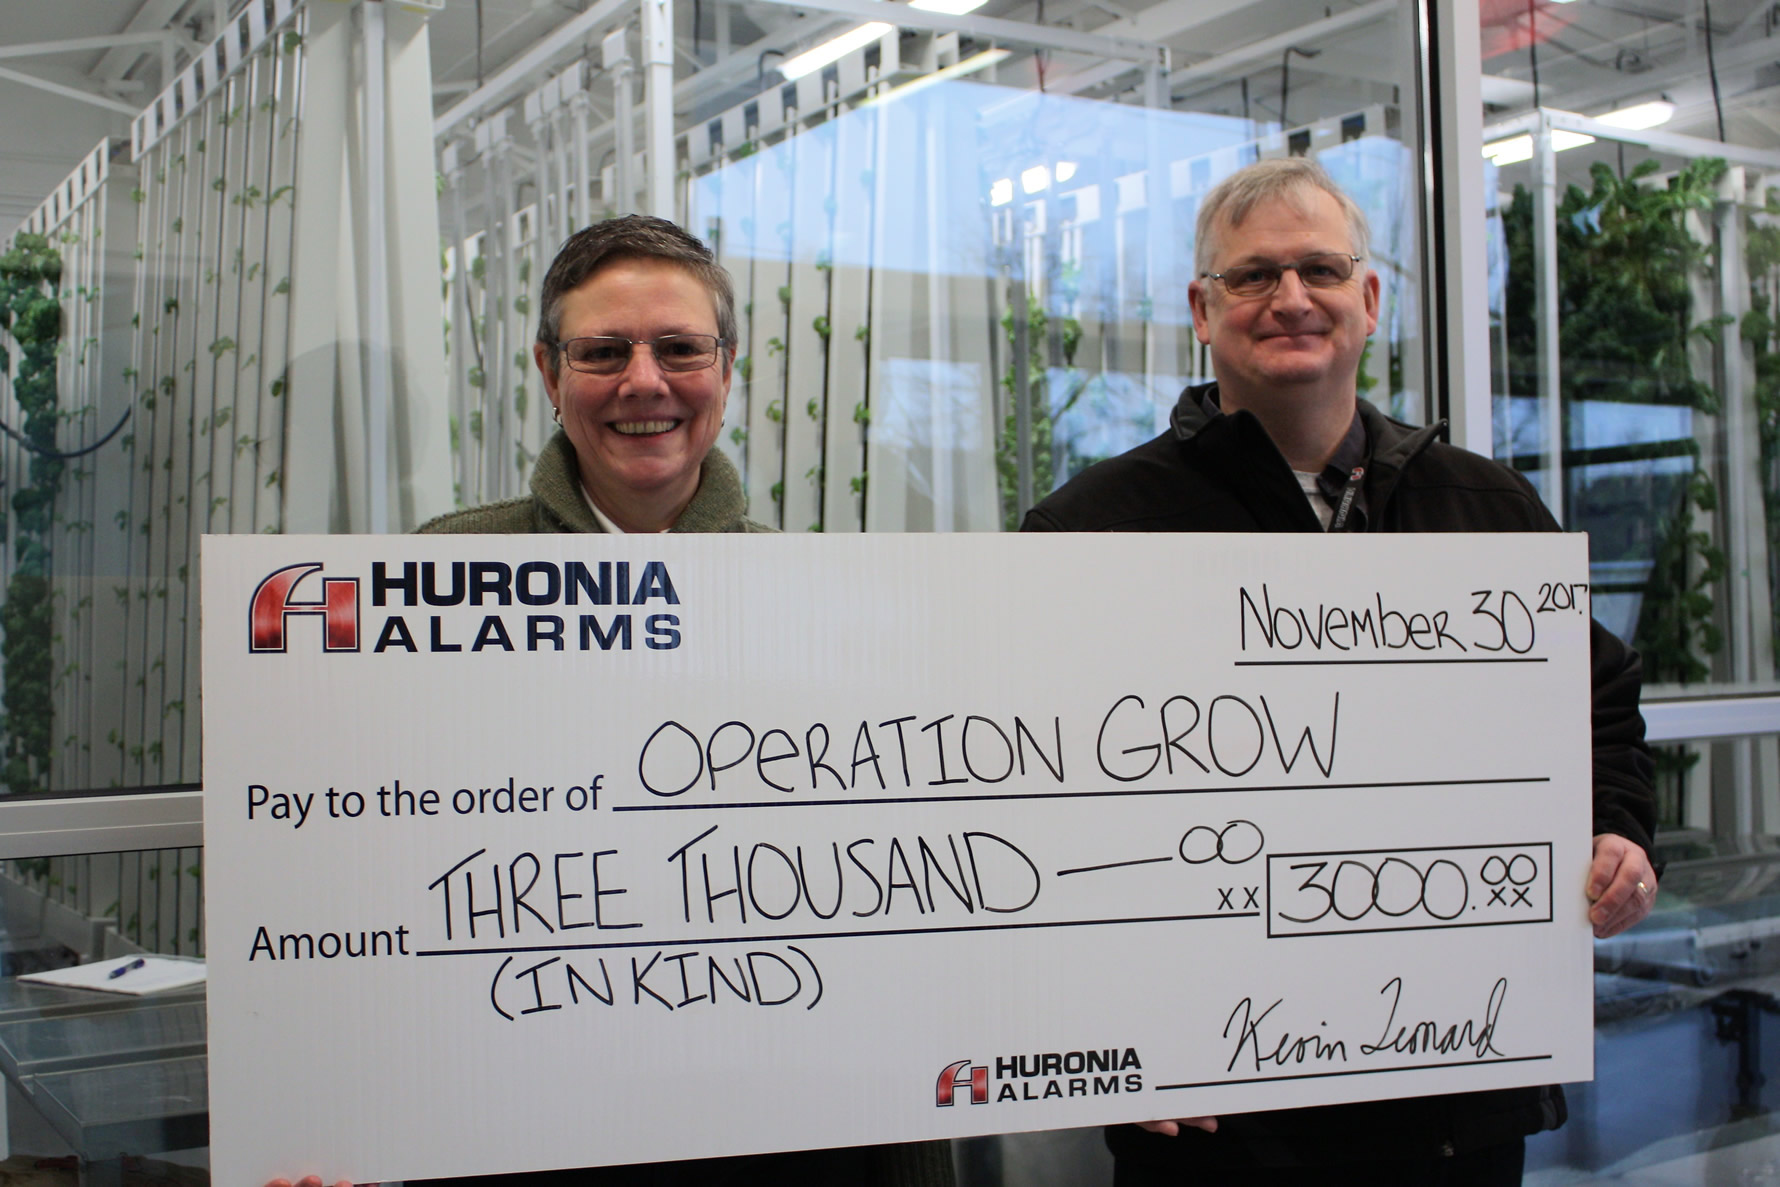 Huronia Alarm donation-in-kind to Operation Grow